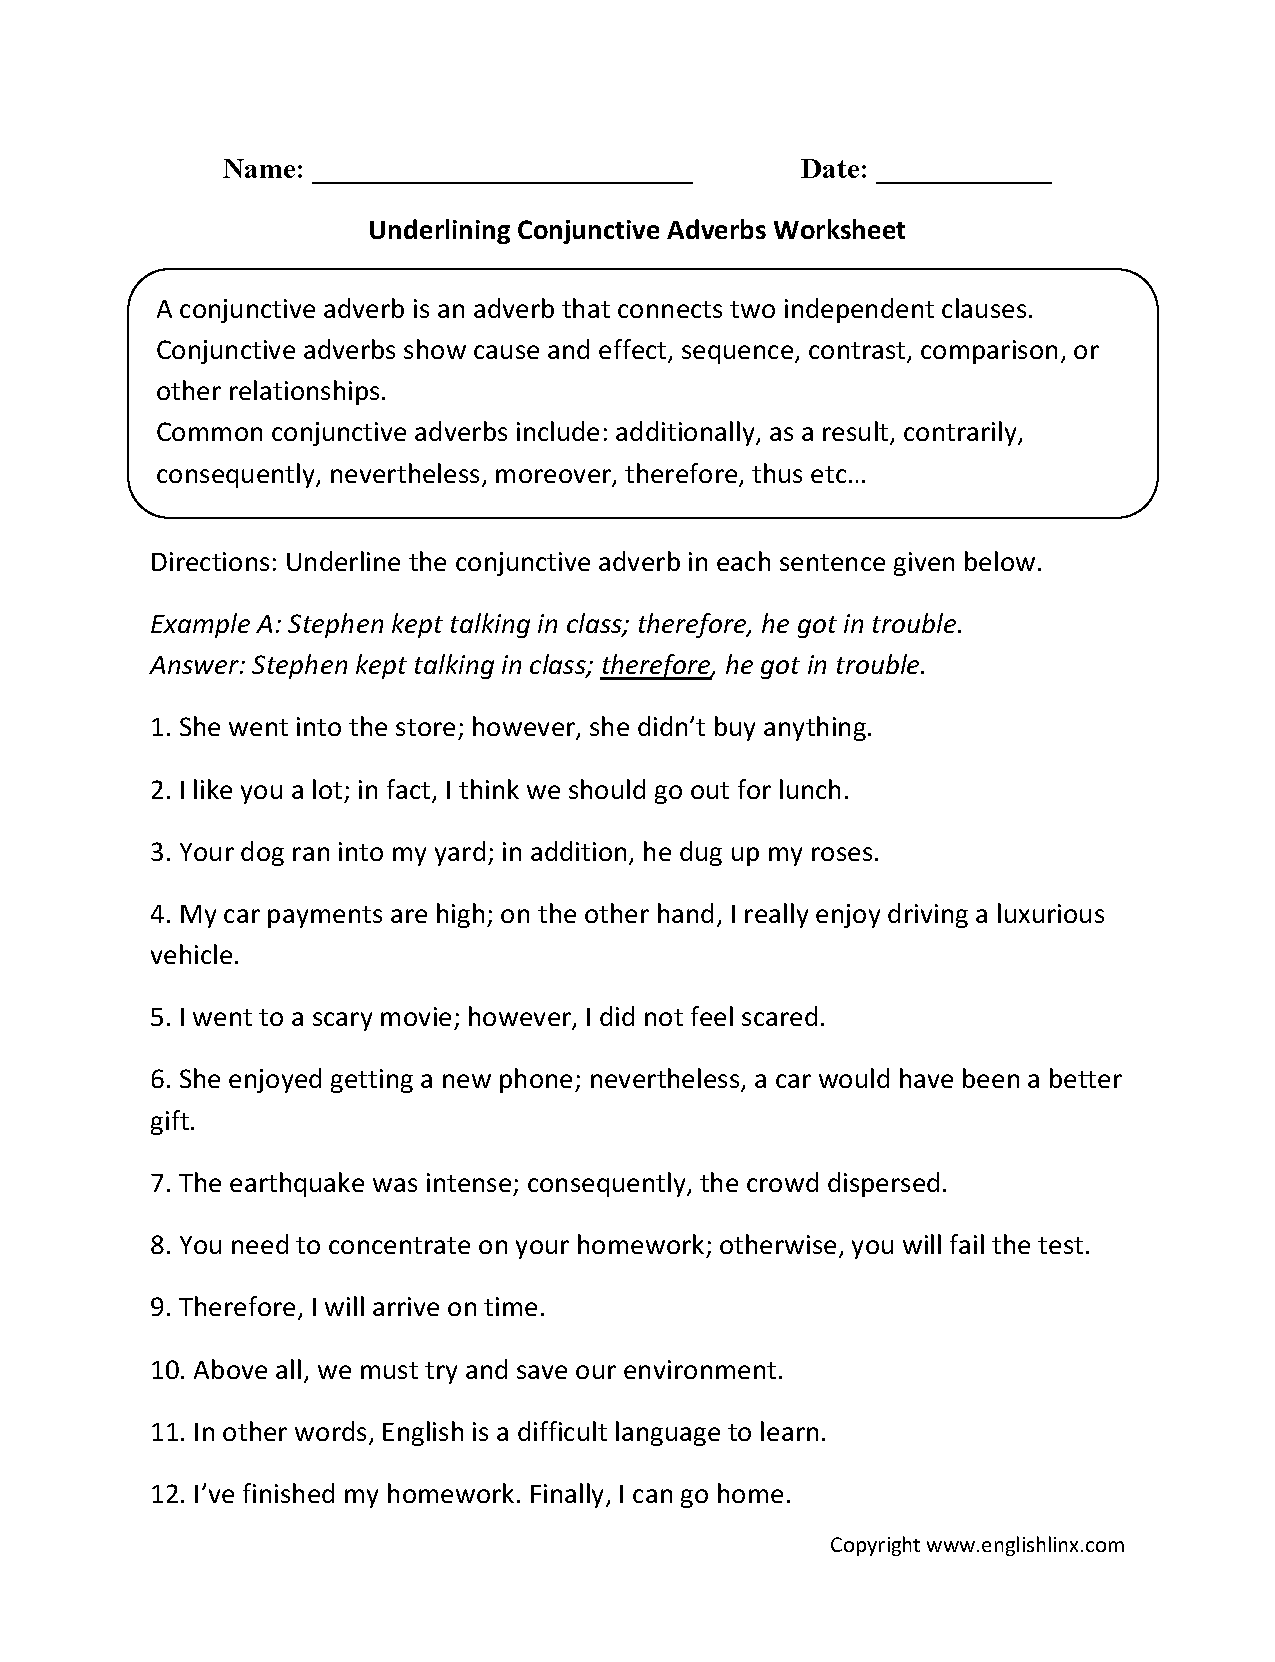 Proatmealus  Outstanding Englishlinxcom  Conjunctions Worksheets With Inspiring Worksheet With Nice Perfect Tenses Worksheets Also Beginning Long Division Worksheets In Addition Basic Algebra Word Problems Worksheets And Free Nd Grade Language Arts Worksheets As Well As Th Step Worksheet Aa Additionally Buget Worksheet From Englishlinxcom With Proatmealus  Inspiring Englishlinxcom  Conjunctions Worksheets With Nice Worksheet And Outstanding Perfect Tenses Worksheets Also Beginning Long Division Worksheets In Addition Basic Algebra Word Problems Worksheets From Englishlinxcom